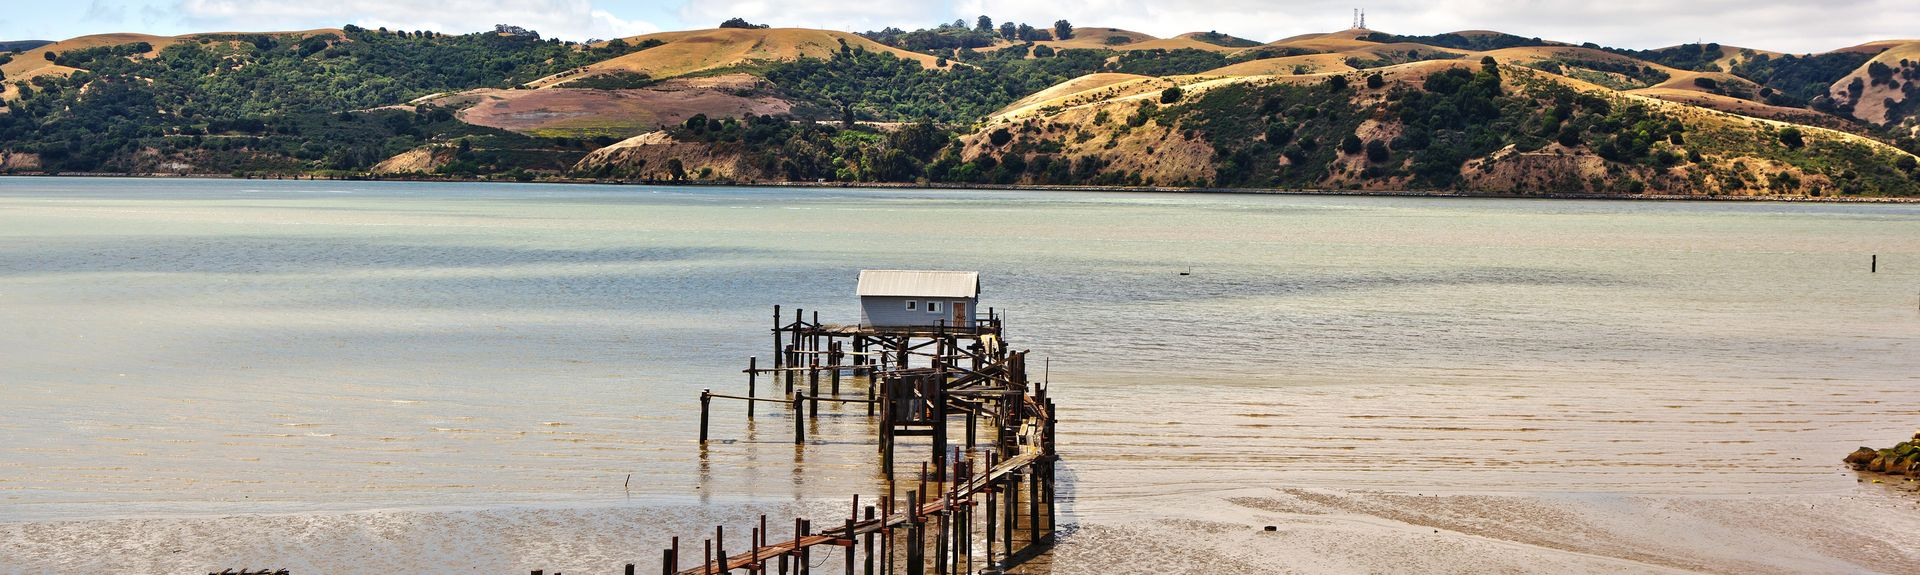 Benicia, California, United States